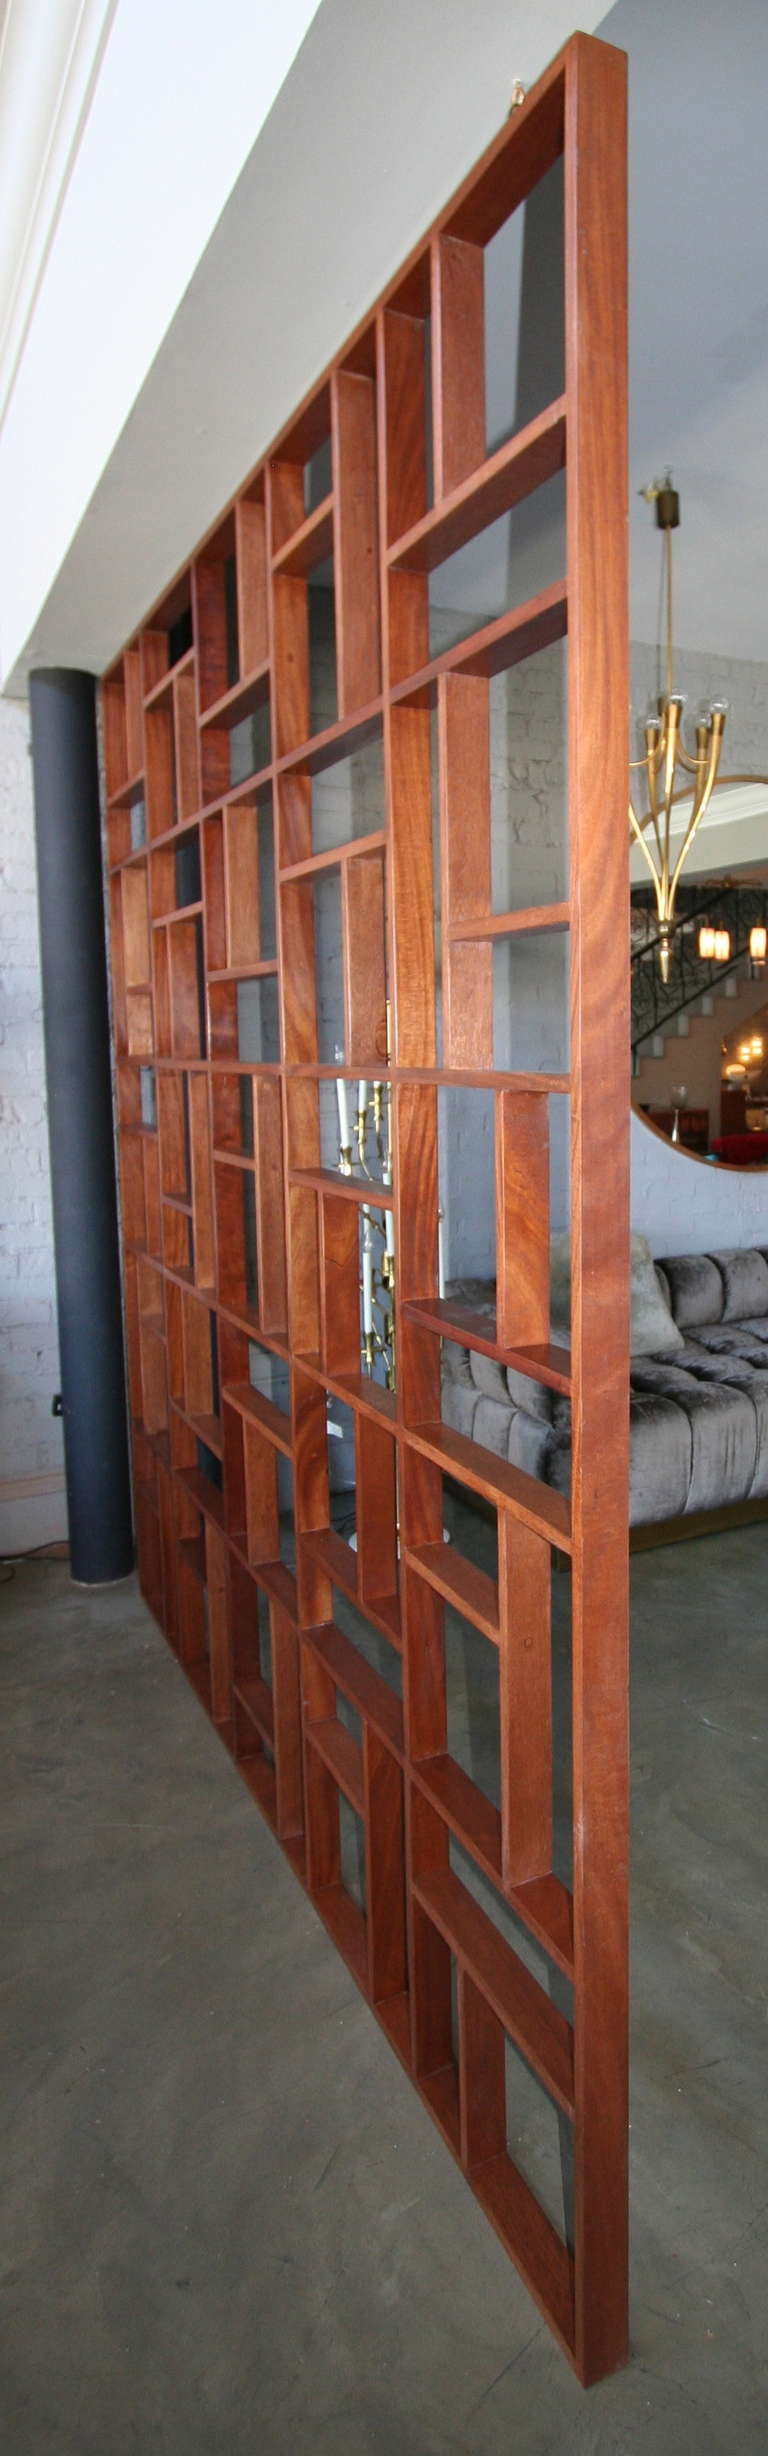 Contemporary Custom Midcentury Style Geometric Wood Room Divider by Adesso Imports For Sale